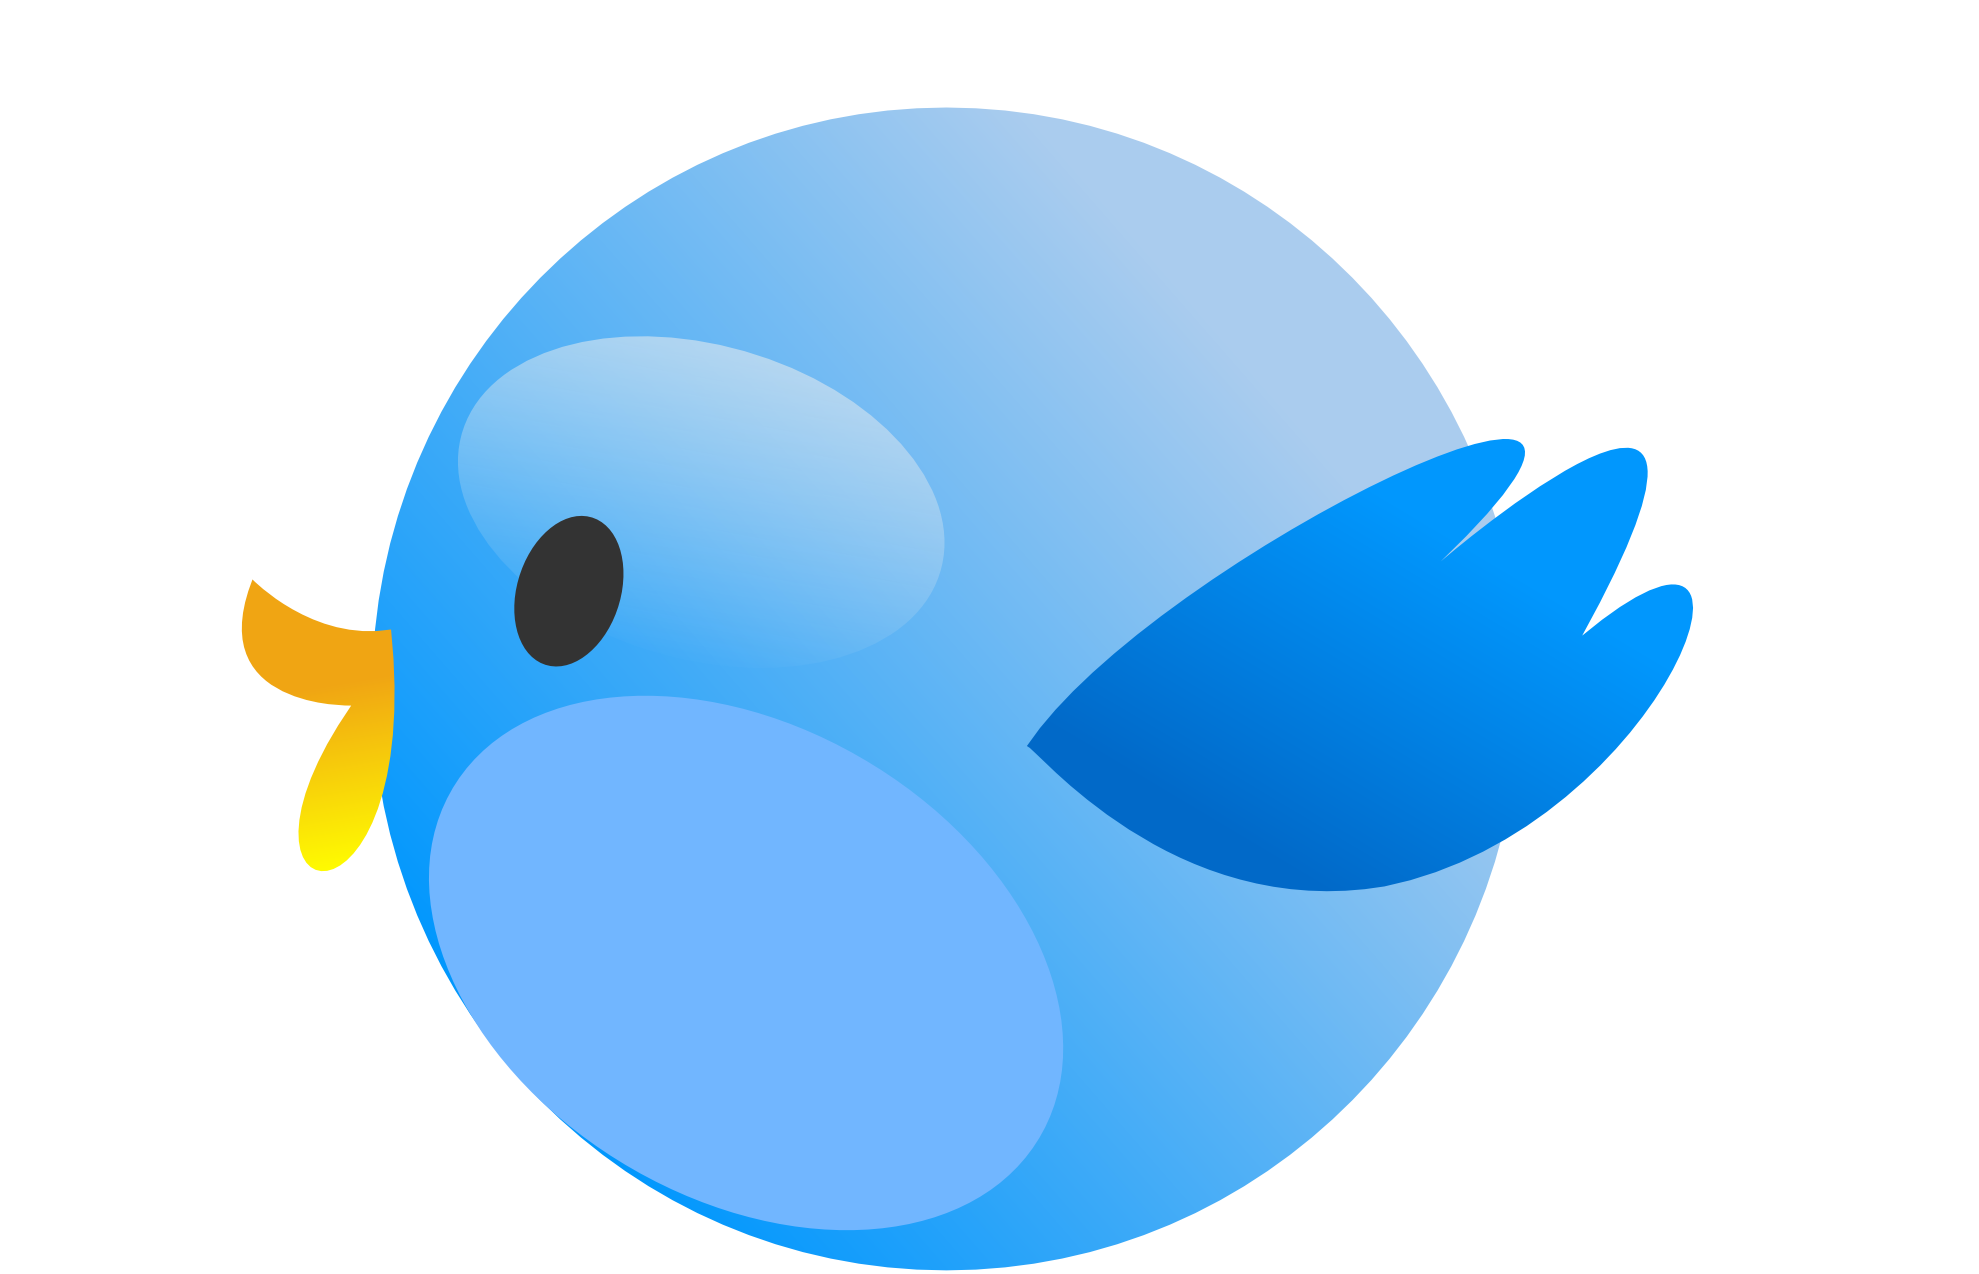 Twitter clipart logo graphic black and white library clipartist.net » Clip Art » tweet twitter bird 2 clipartist.net 2012 ... graphic black and white library